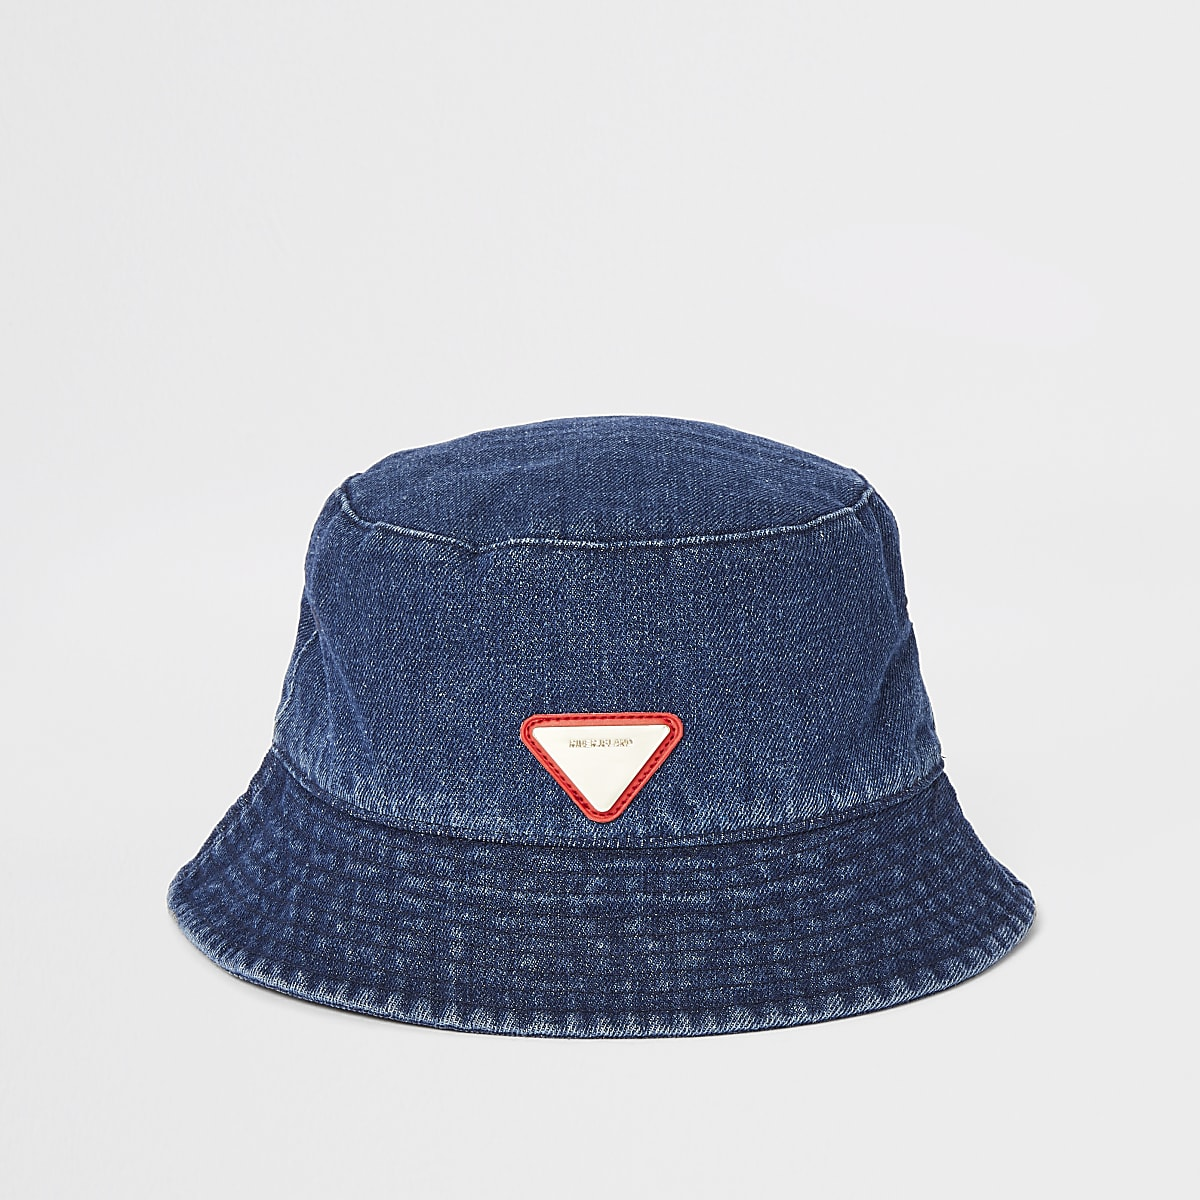 cb101b6b4e472 Blue denim bucket hat - Hats   Caps - Accessories - men